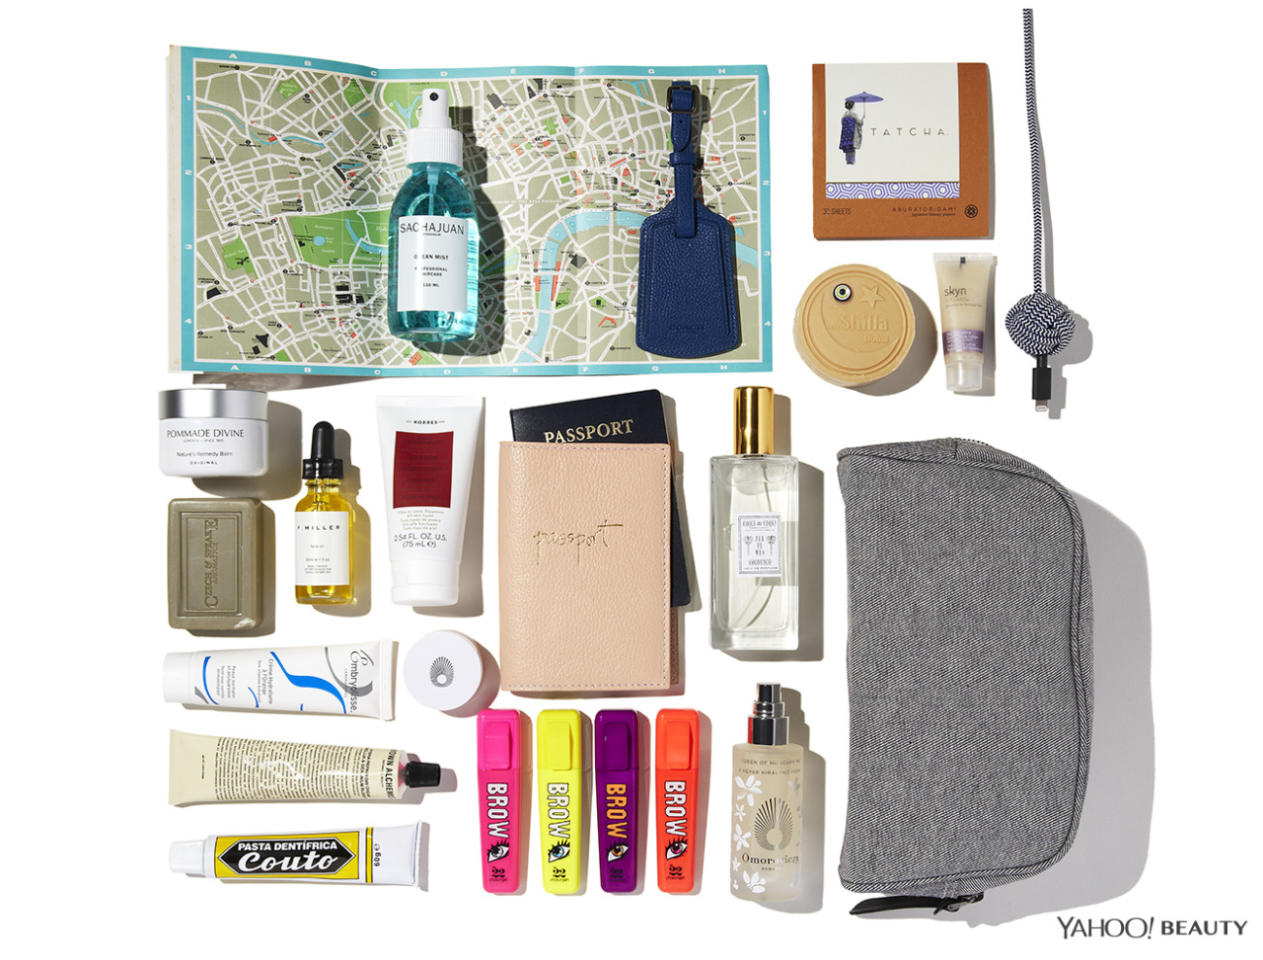 <p>From France to Dubai, these are gifts for the beauty and travel lover in your life. <i>(Photo: Jon Paterson)</i></p>